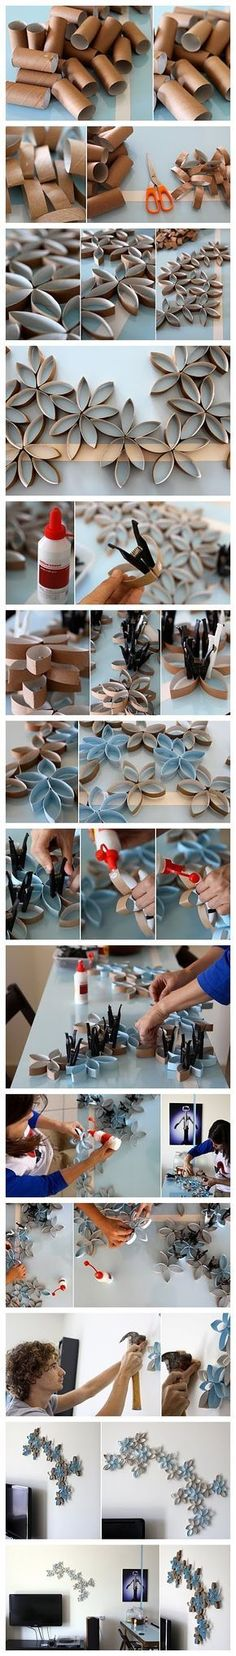 How to DIY toilet paper roll wall art project | DIY Tag